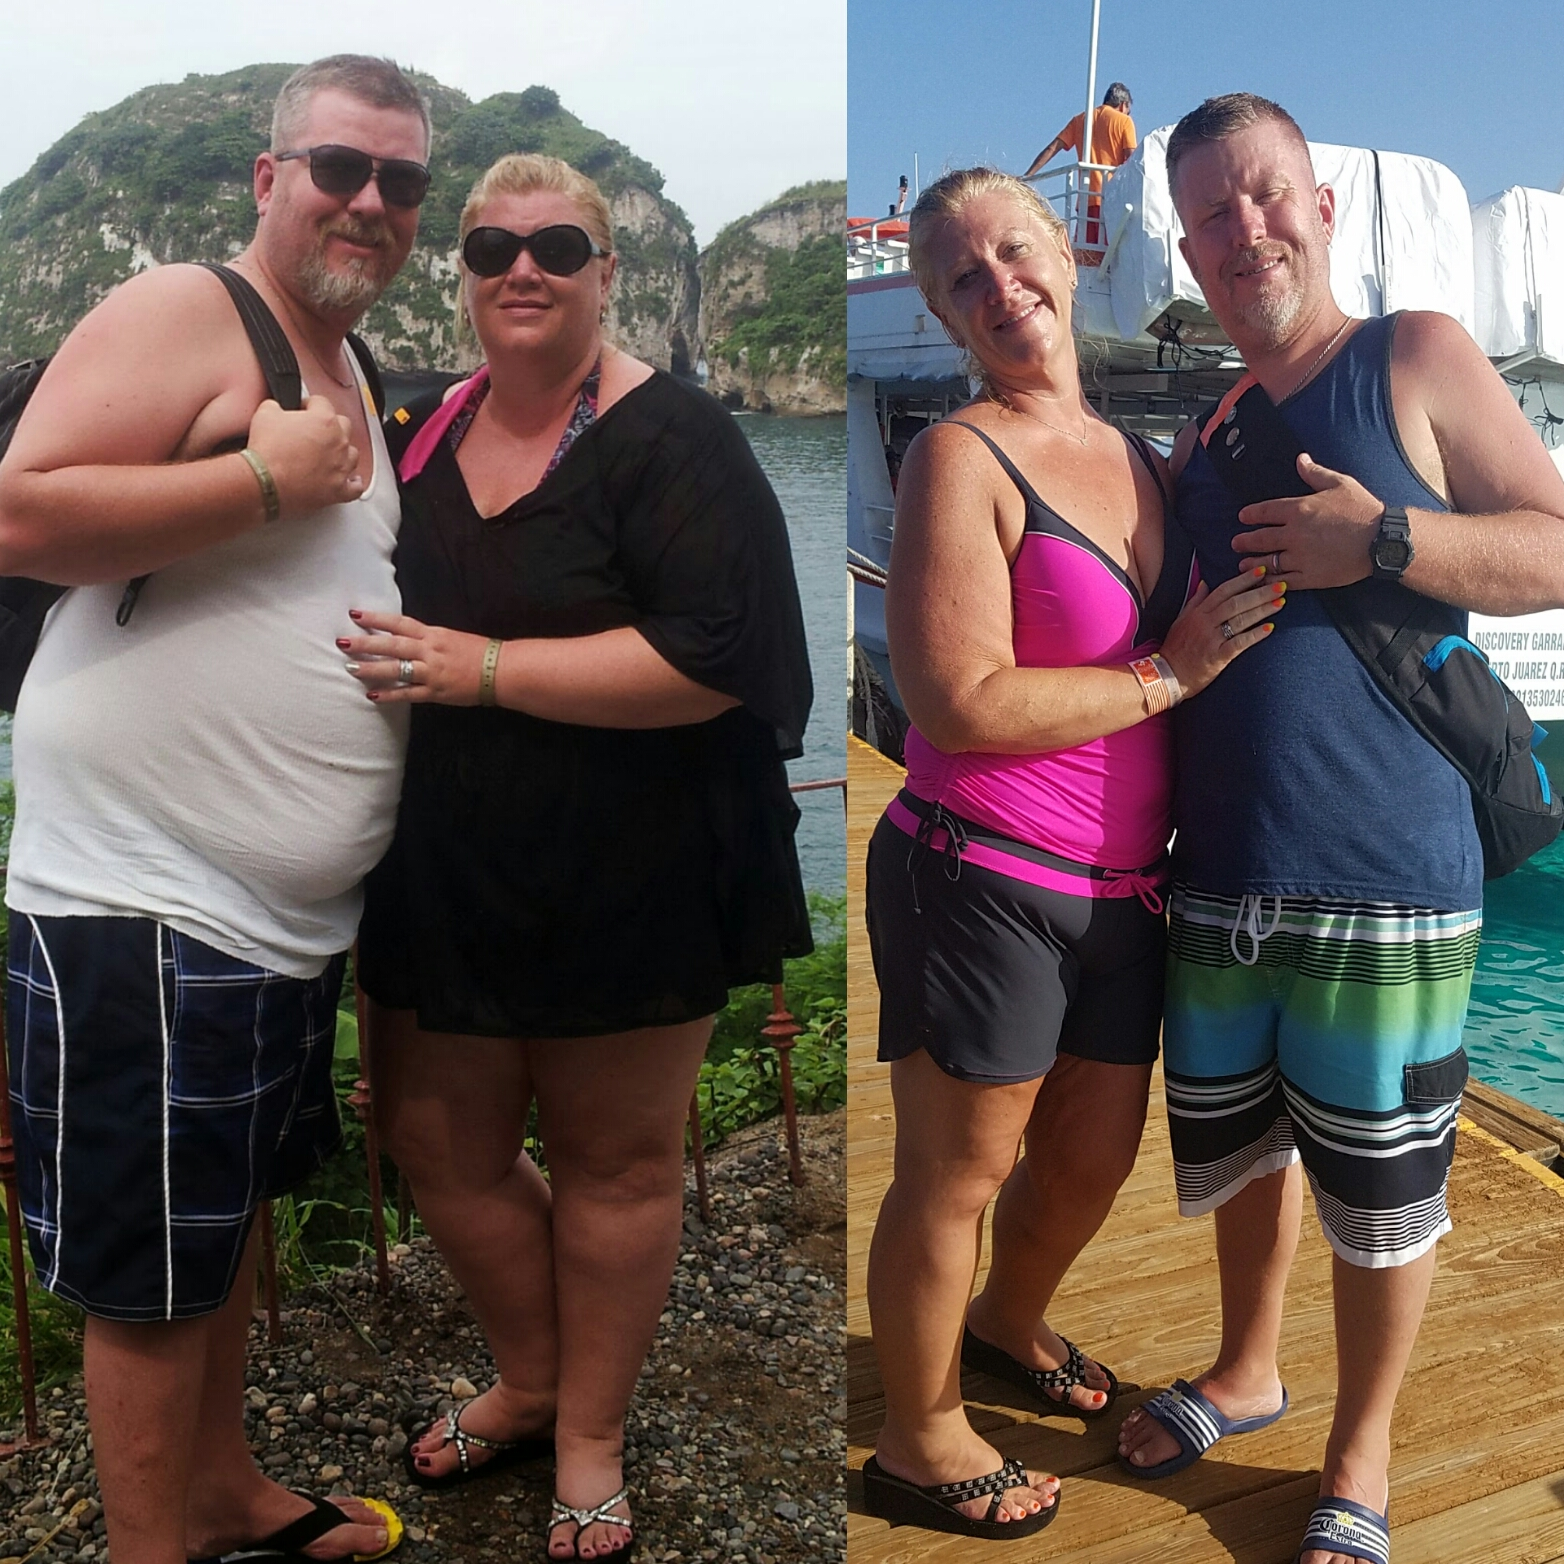 Rachel lost 173 pounds! See my before and after weight loss pictures, and read amazing weight loss success stories from real women and their best weight loss diet plans and programs. Motivation to lose weight with walking and inspiration from before and after weightloss pics and photos.